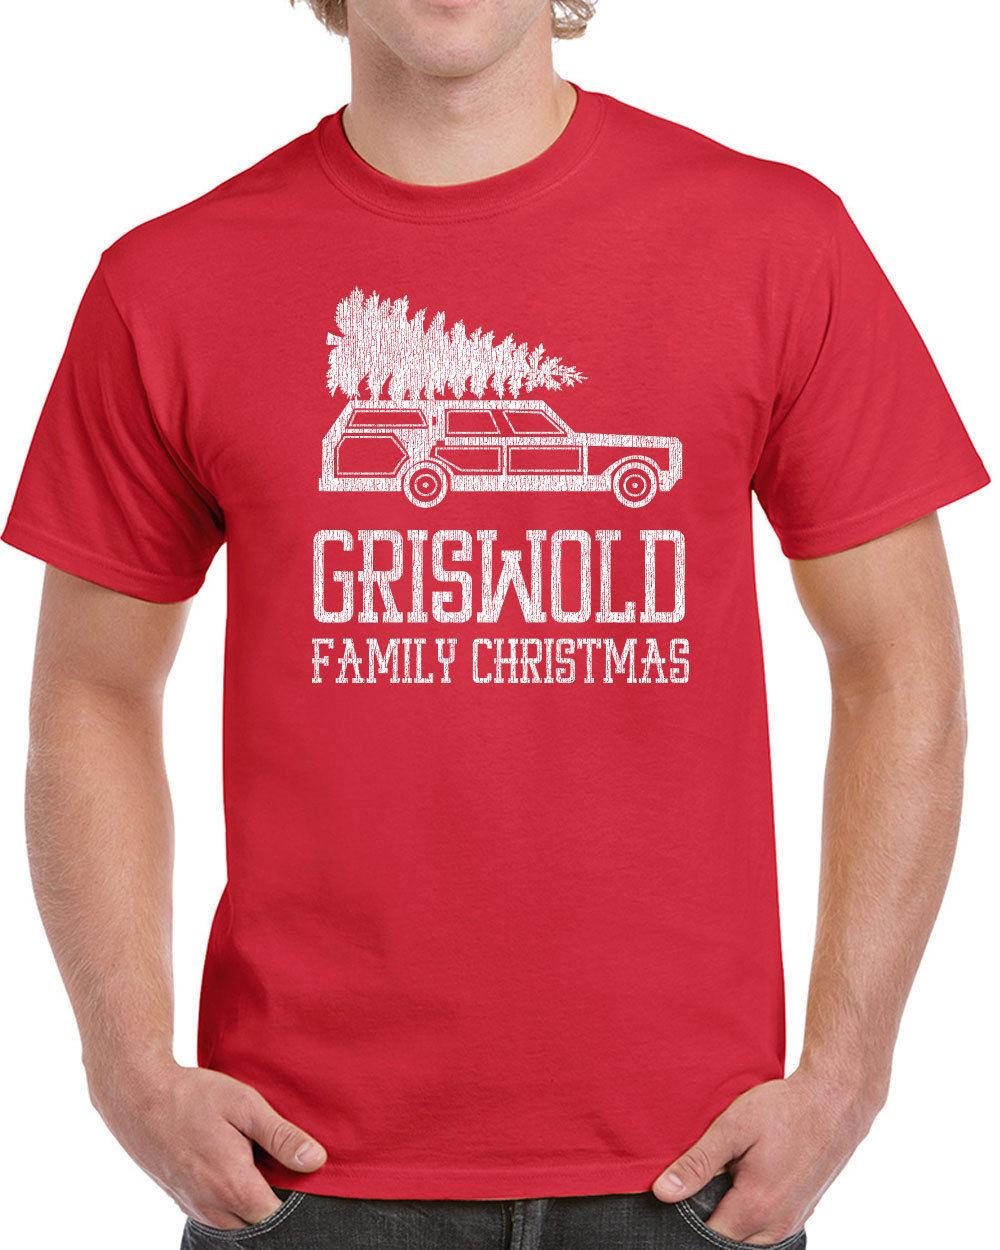 387 griswold family vacation mens t shirt station wagon christmas tree 90s movie t shrt fun t shirt from amesion 1145 dhgatecom